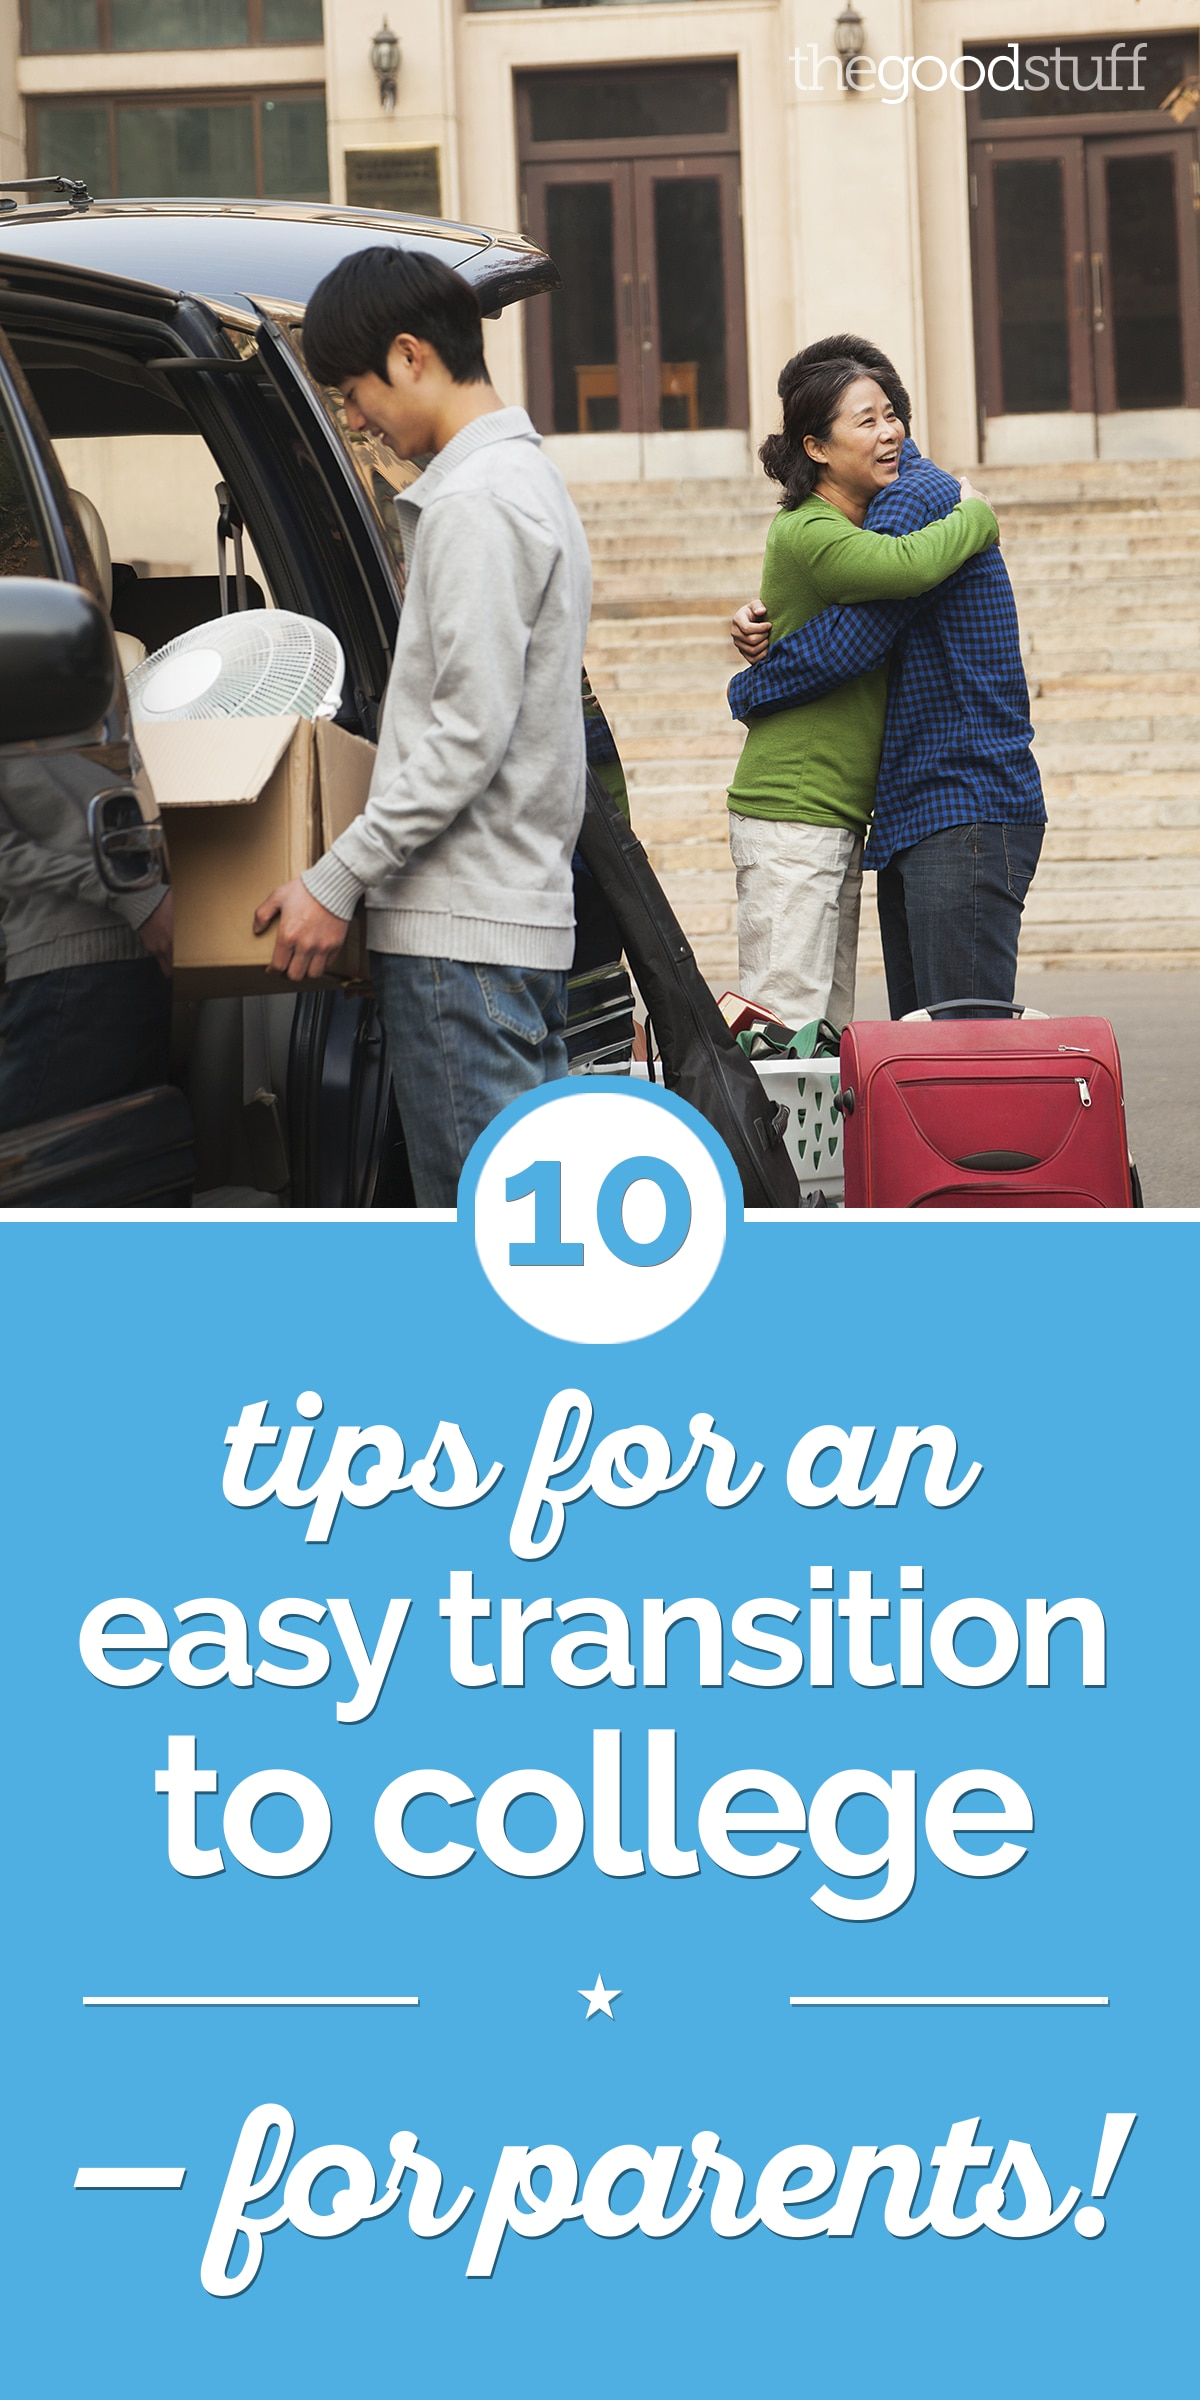 10 Tips for an Easy Transition to College — for Parents! | thegoodstuff